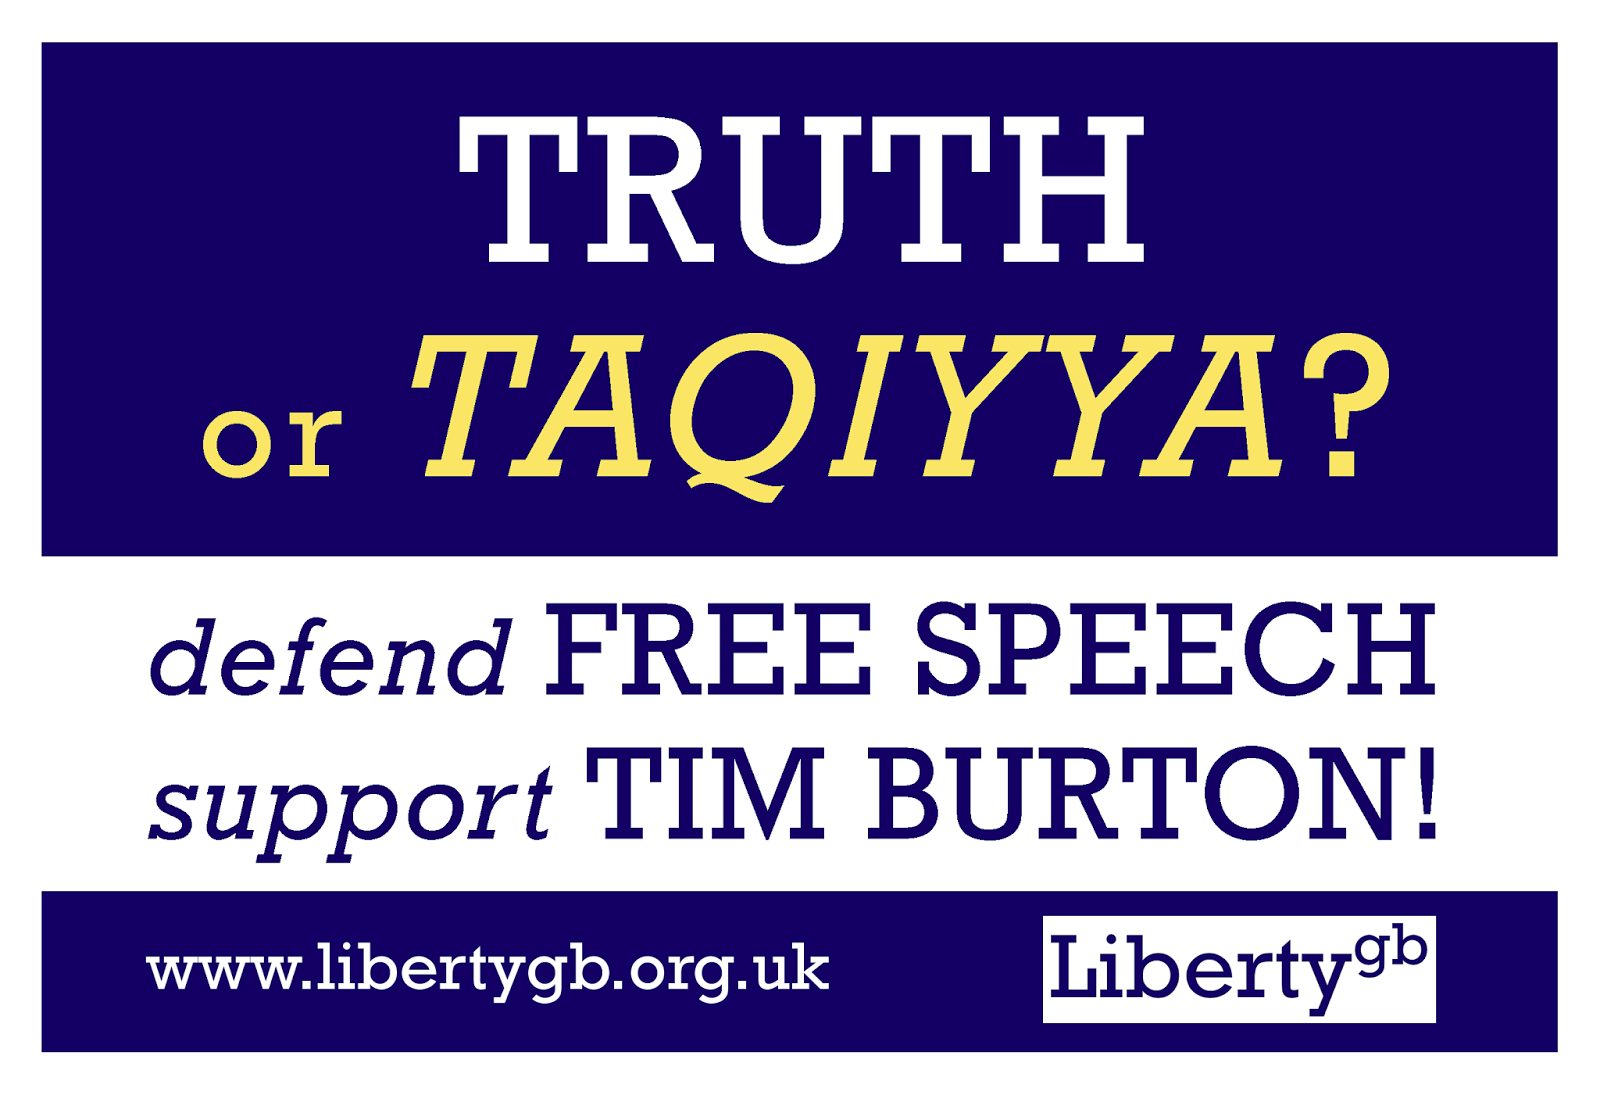 Liberty GB placard at Tim Burton's trial: Truth or Taqiyya?